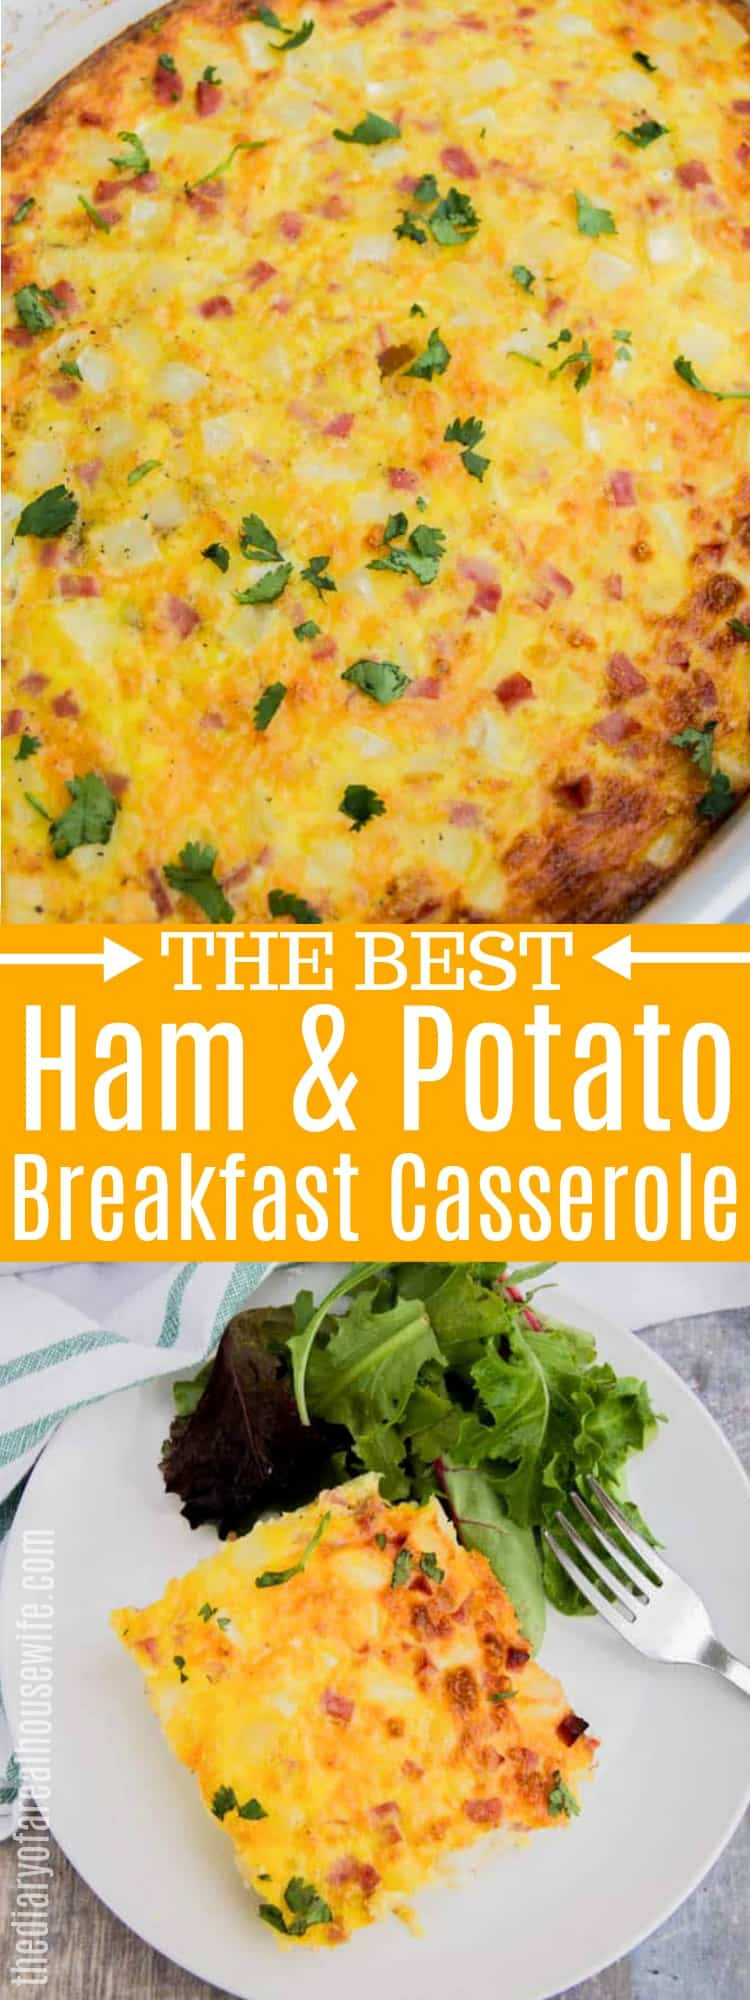 Ham and Potato Breakfast Casserole